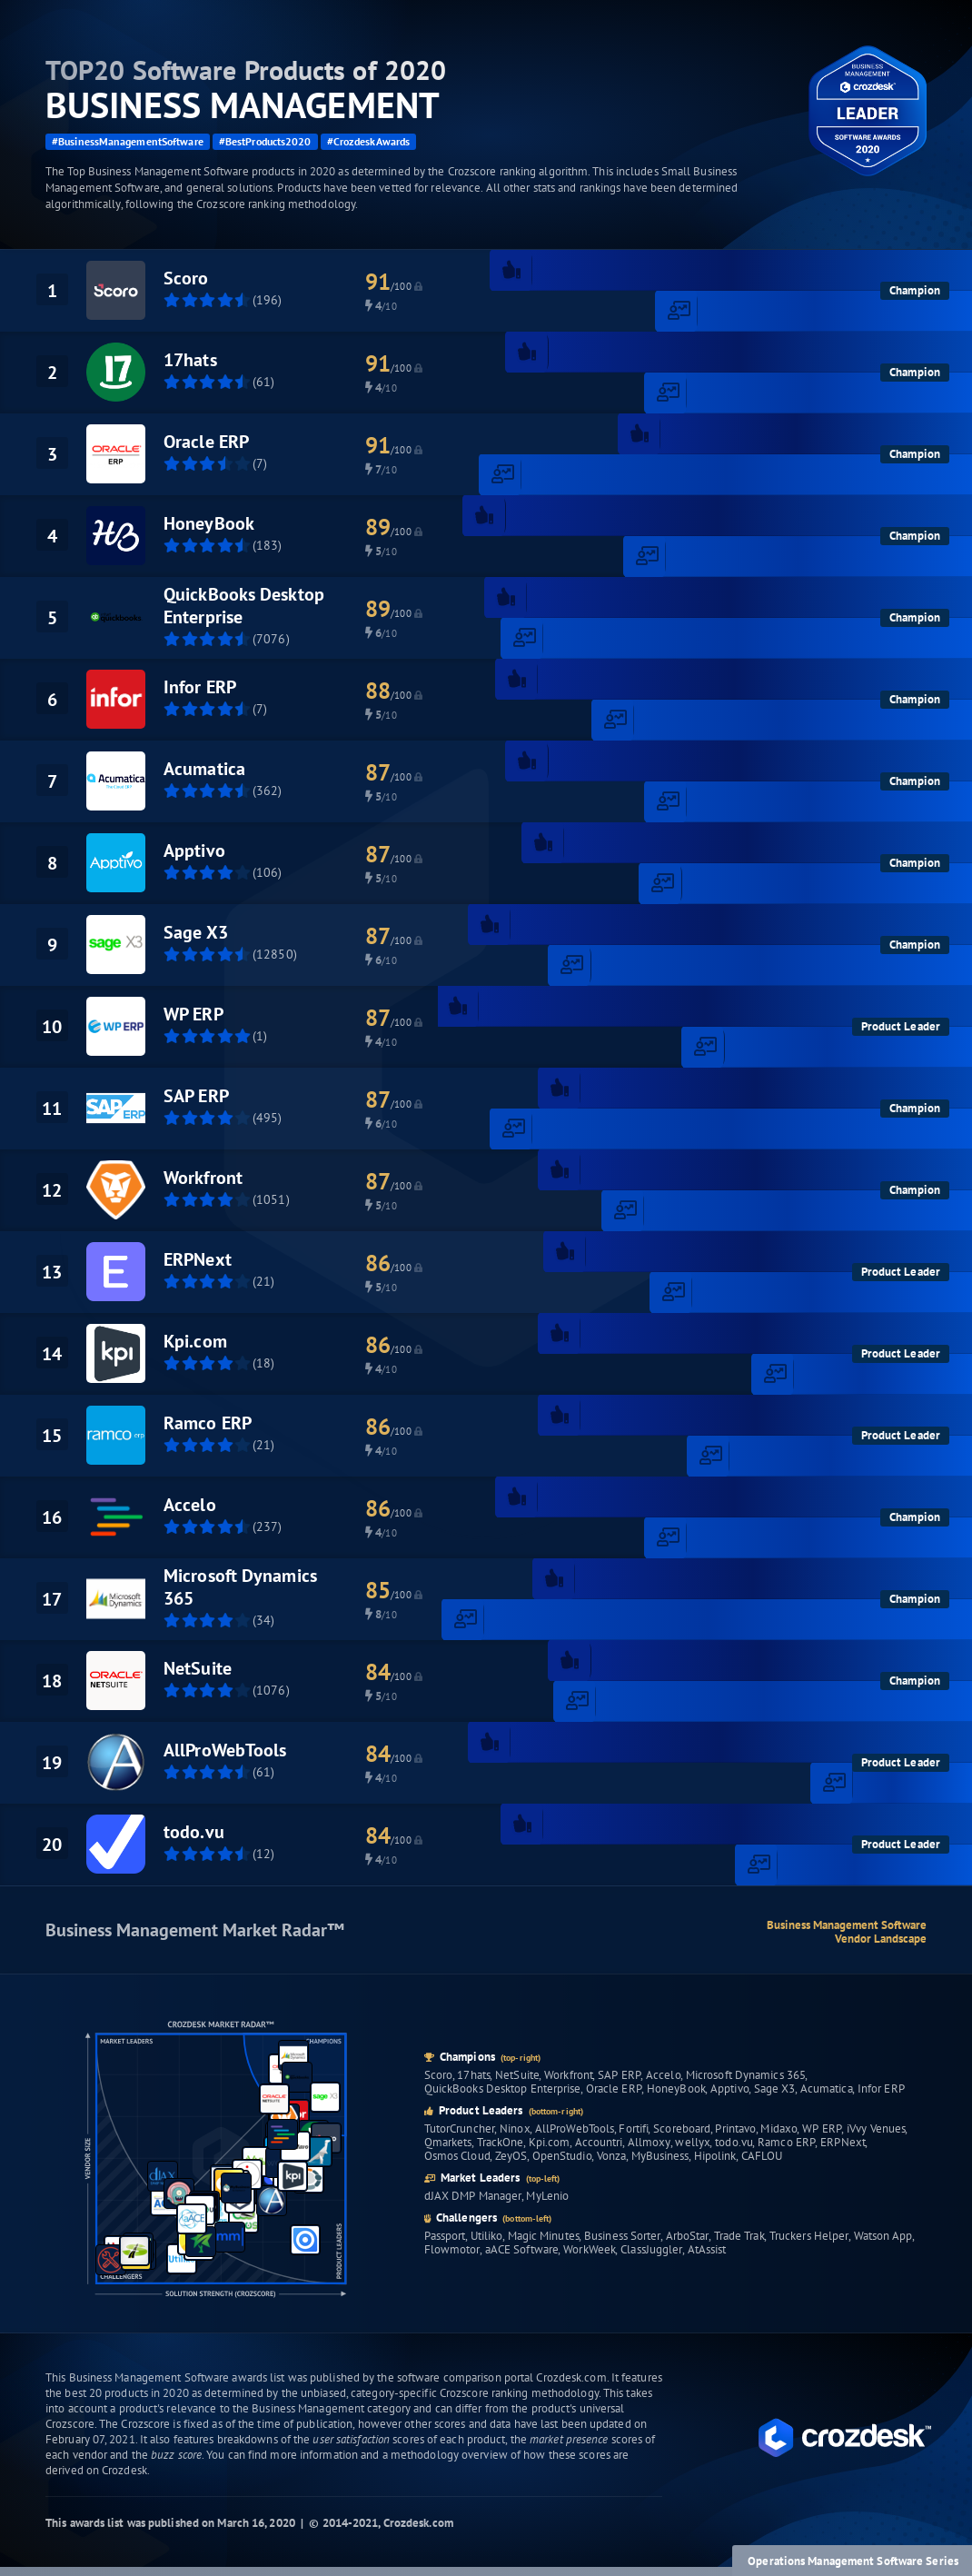 Top 20 Business Management Software of 2020 Infographic